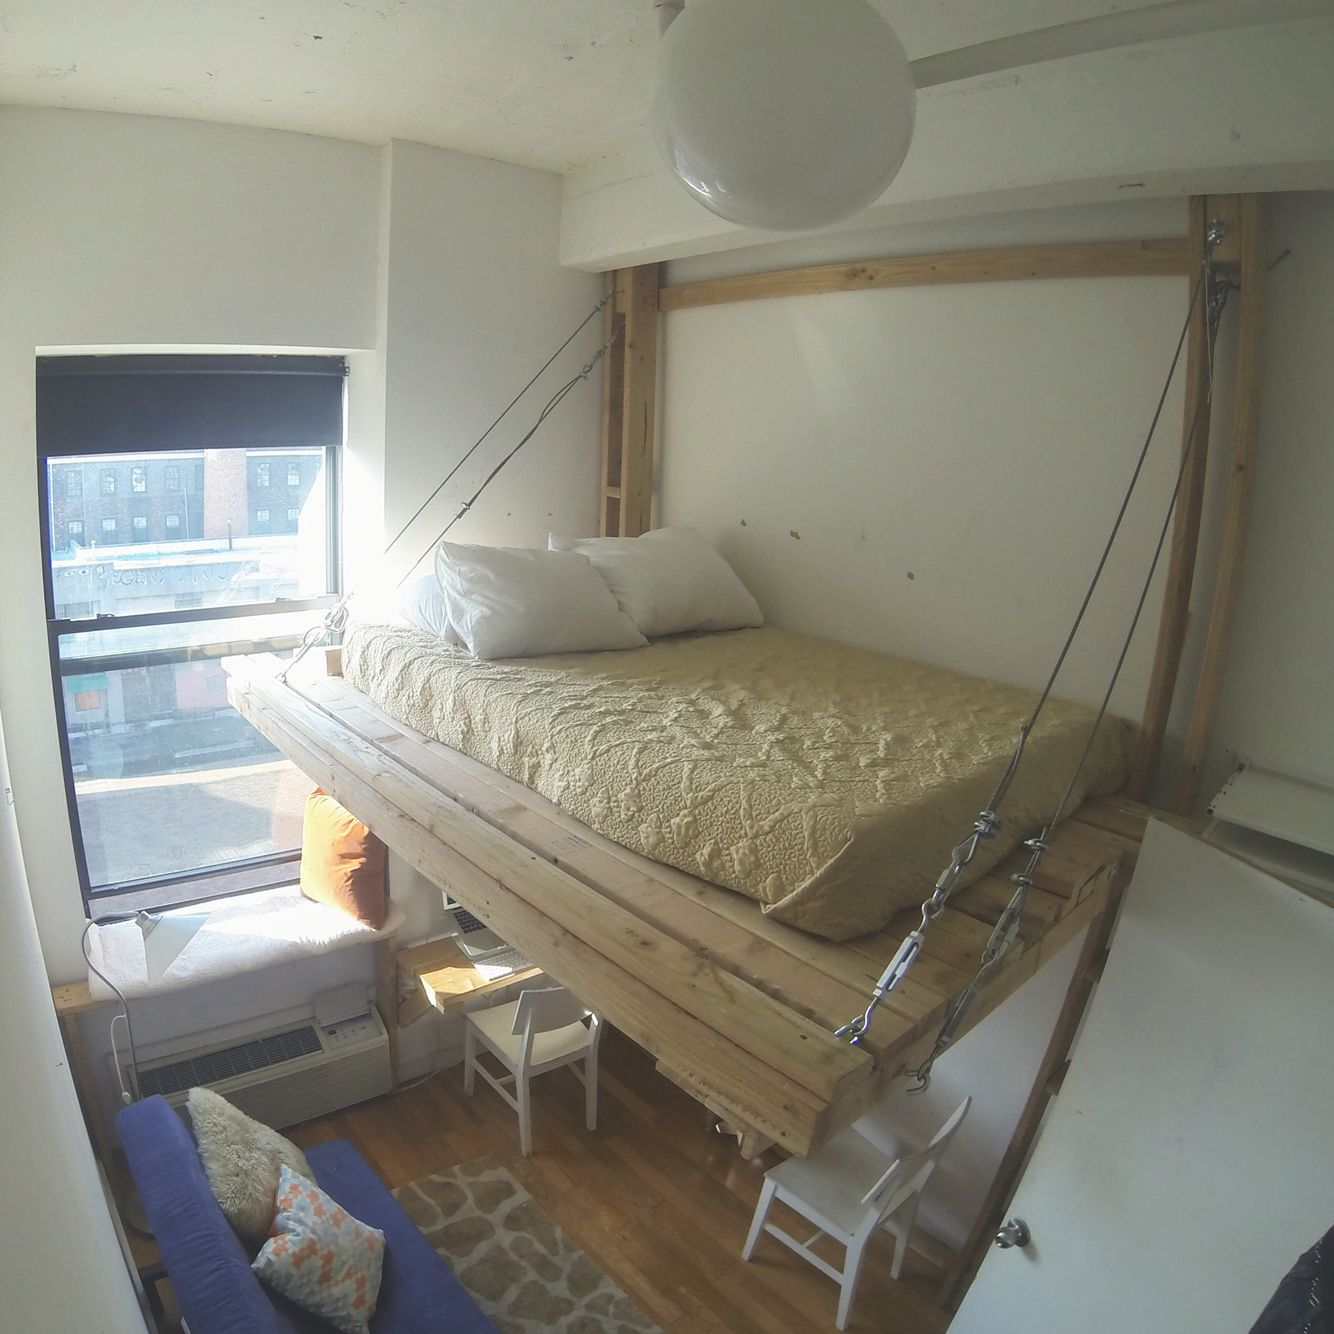 Superior Hanging Bed / Loft Bed / Suspended Bed / Floating Bed / Urban Tree Fort /